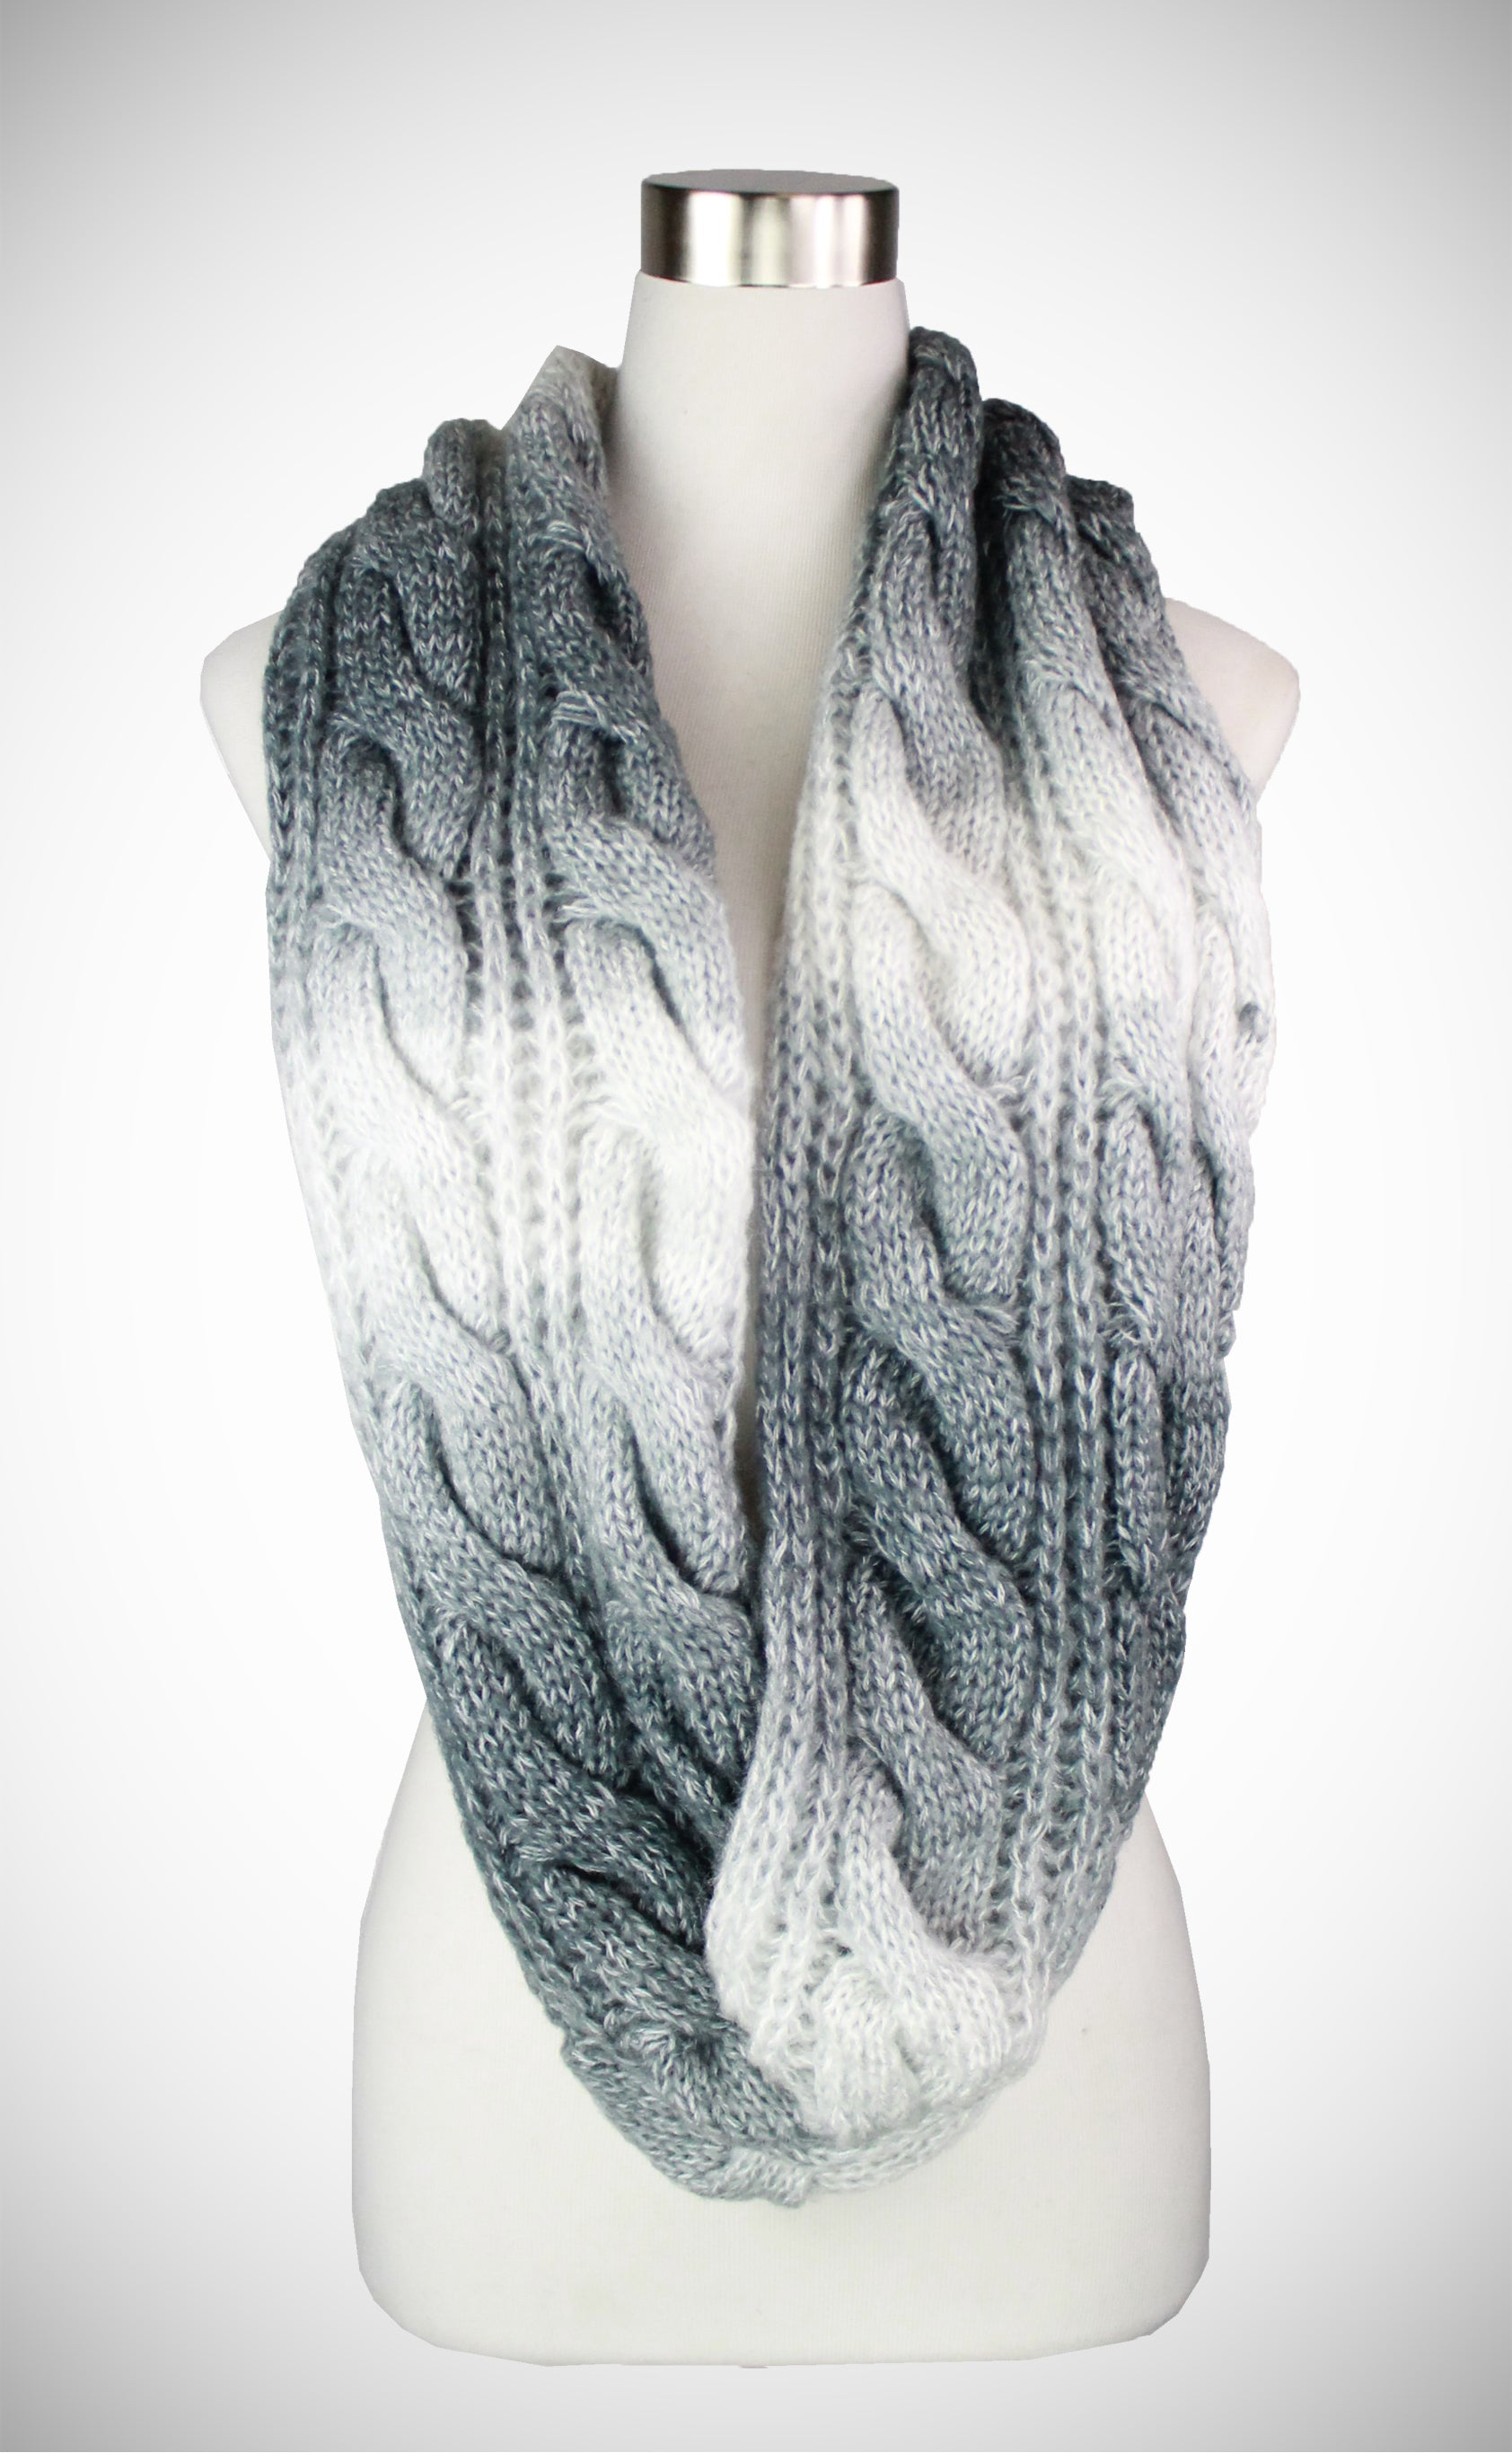 GRADIANT CABLE KNIT INFINITY SCARF - Tias Place